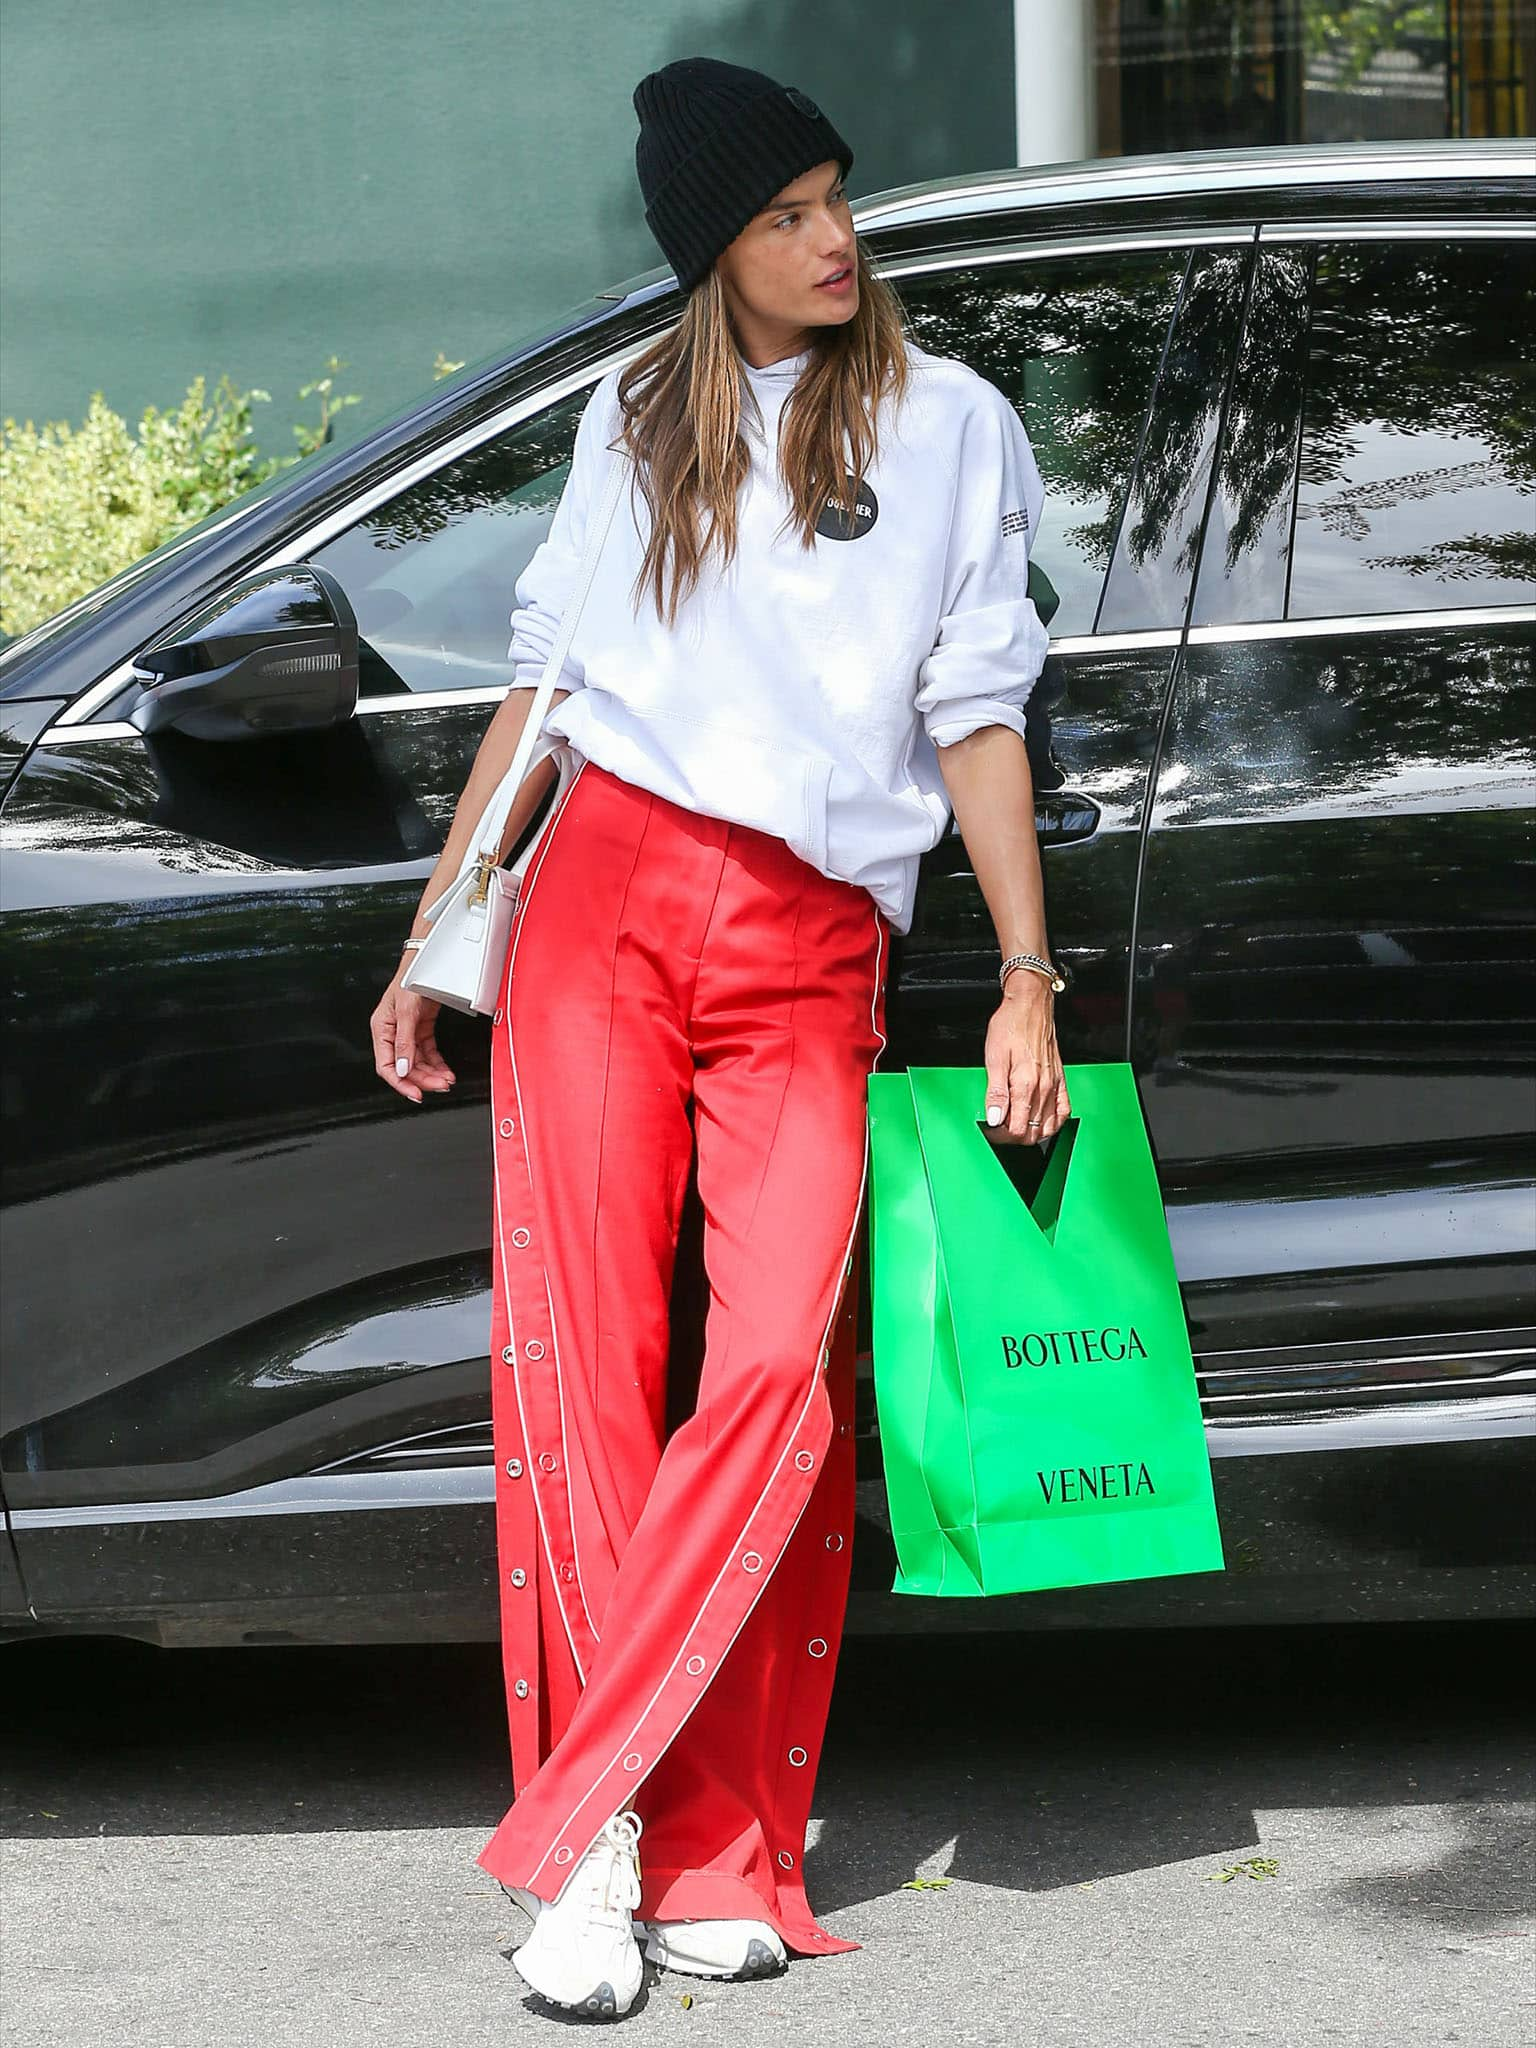 Alessandra Ambrosio goes on a solo shopping trip at Bottega Veneta in Los Angeles on March 24, 2021